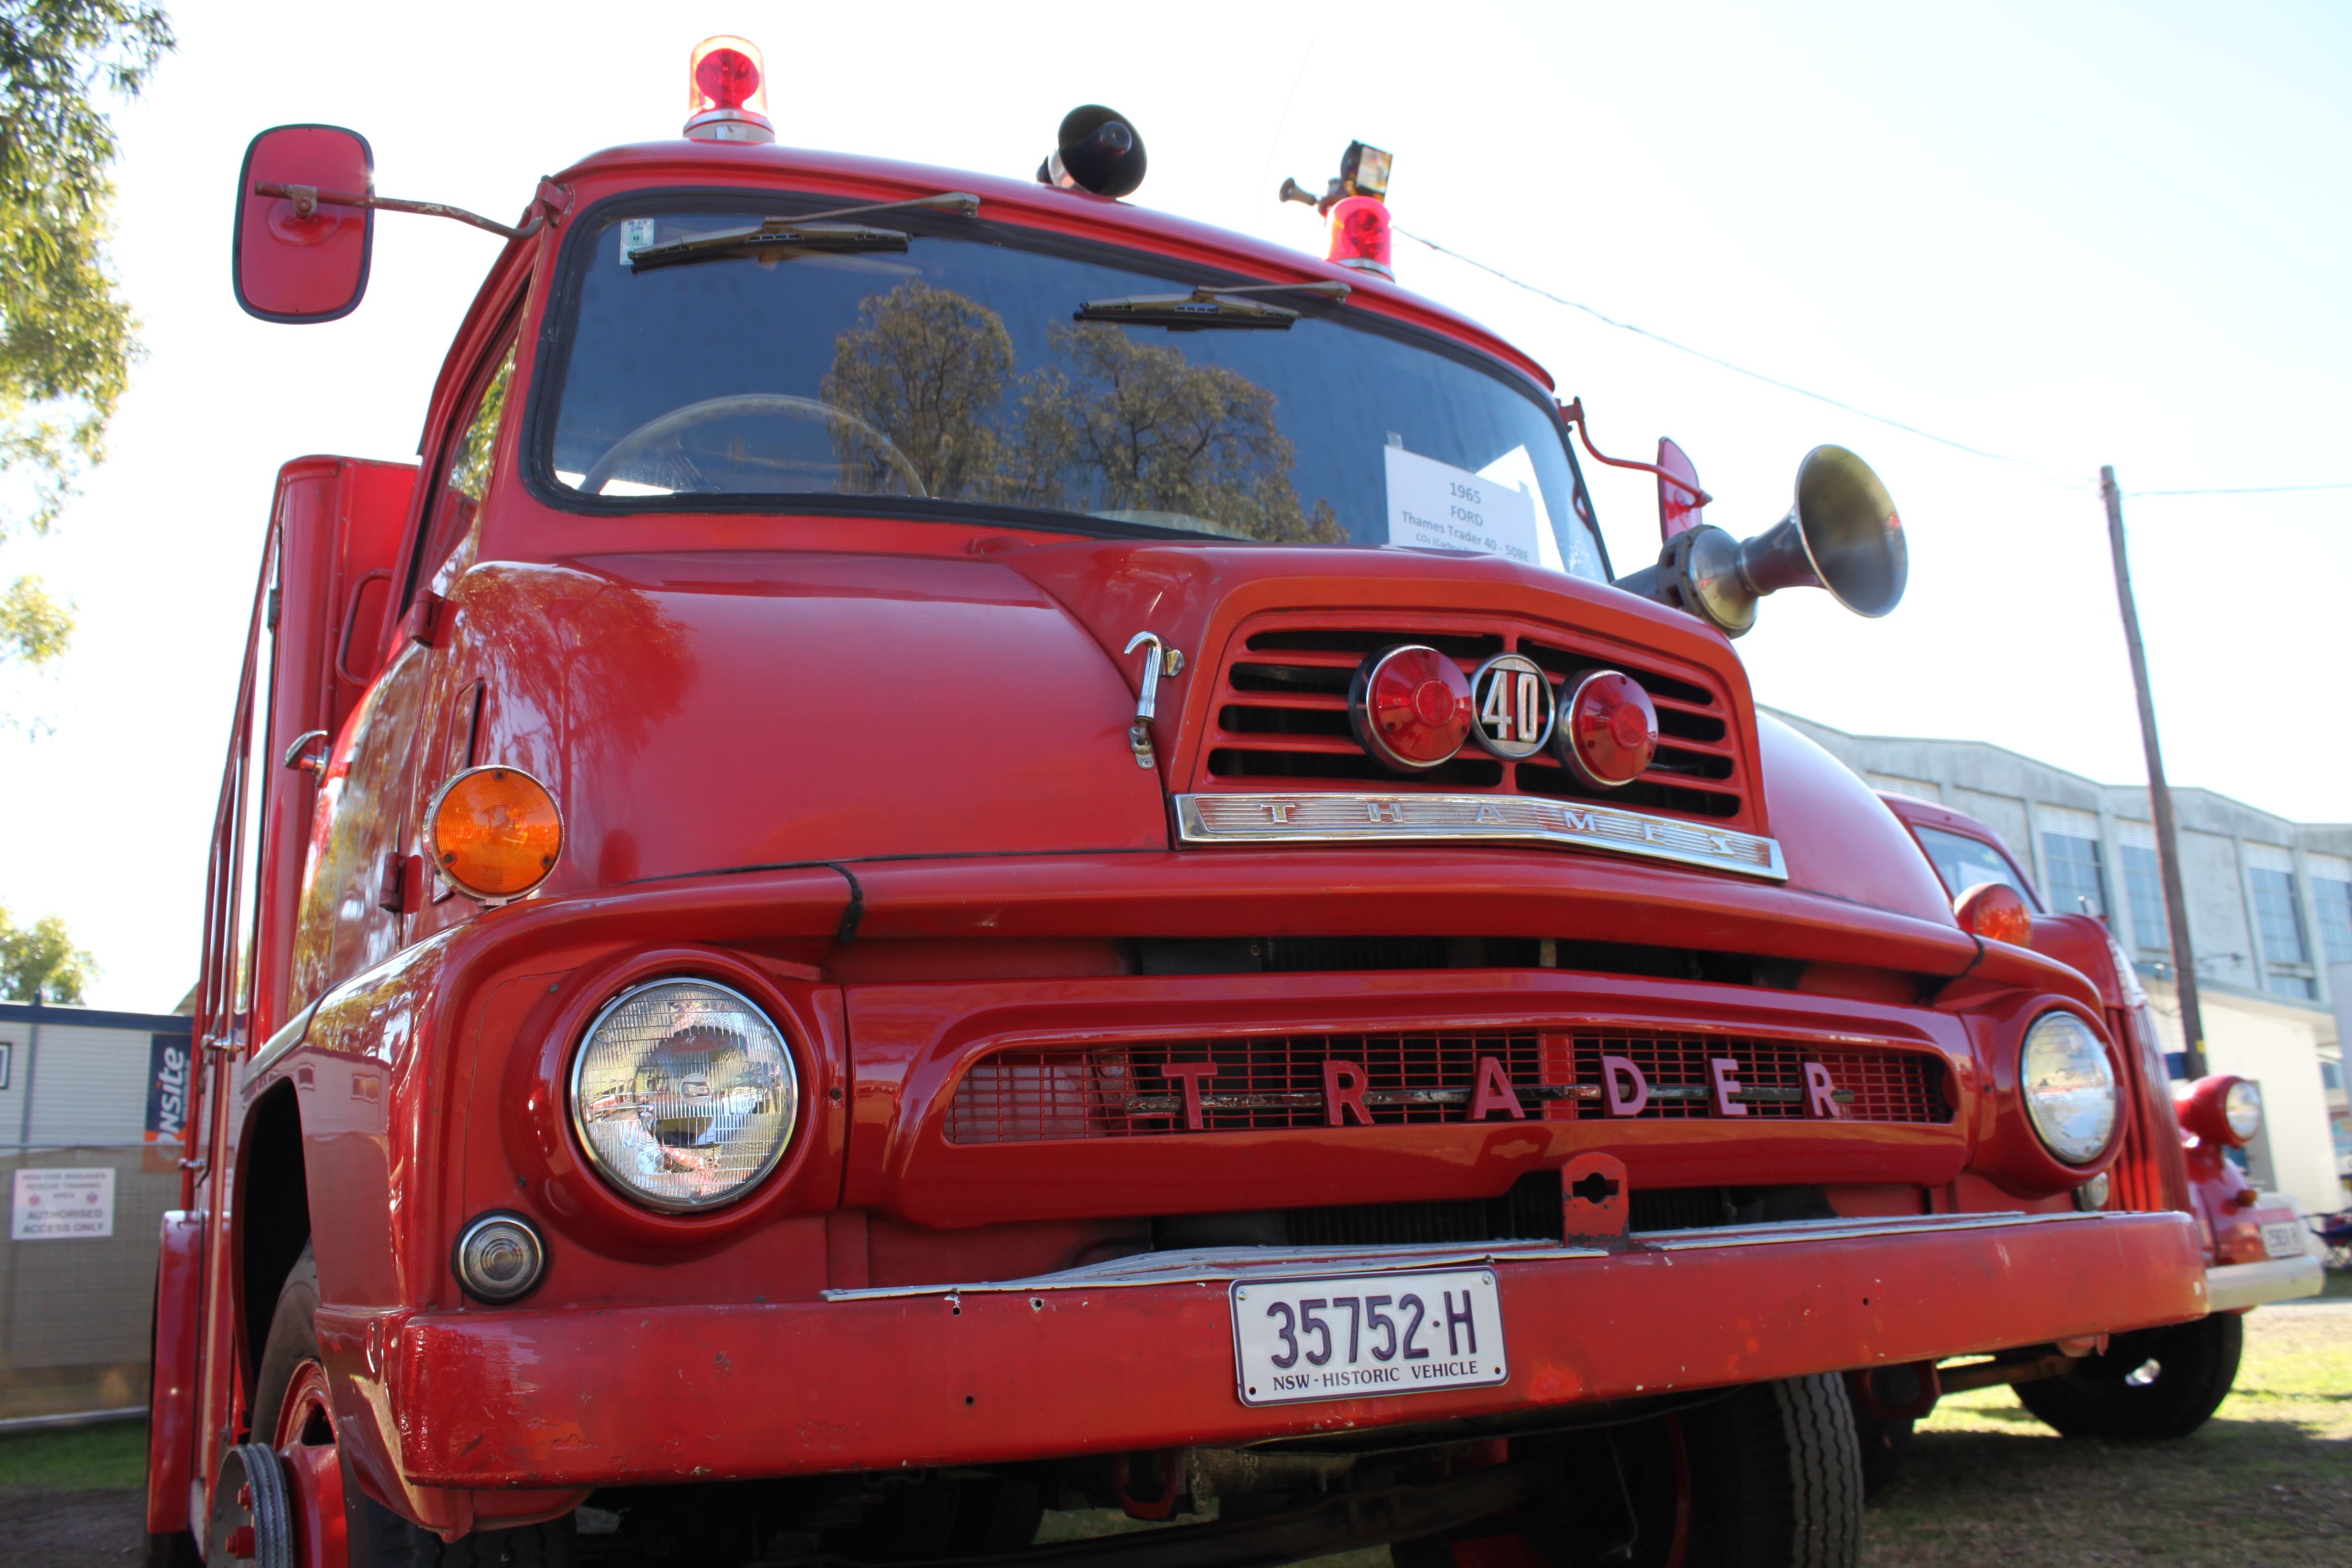 File:Ford Thames Trader Fire Truck (15625429070).jpg - Wikimedia Commons